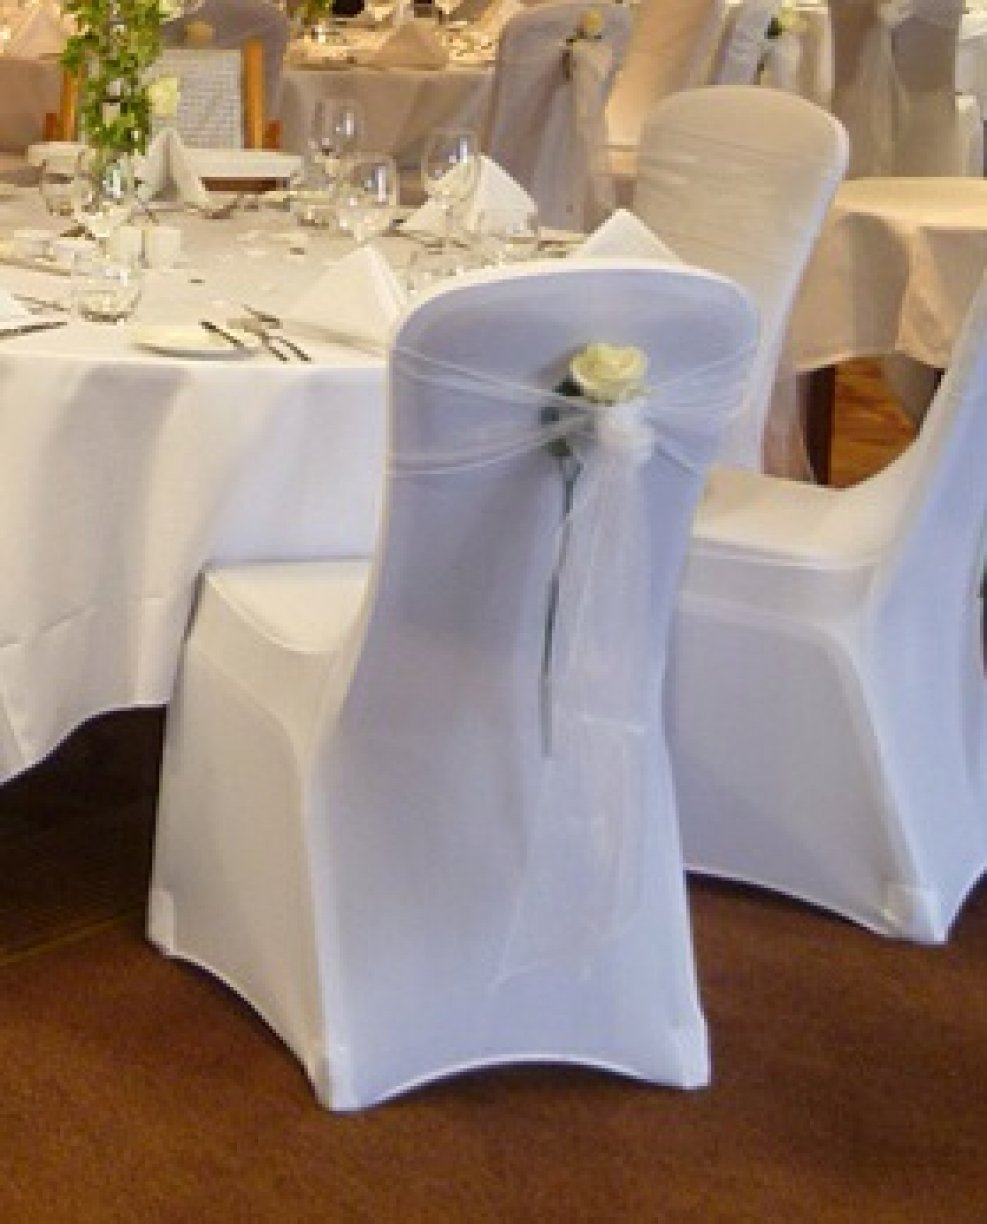 Lycra hugs the chair shape & is a popular choice especially with unusual shaped chairs